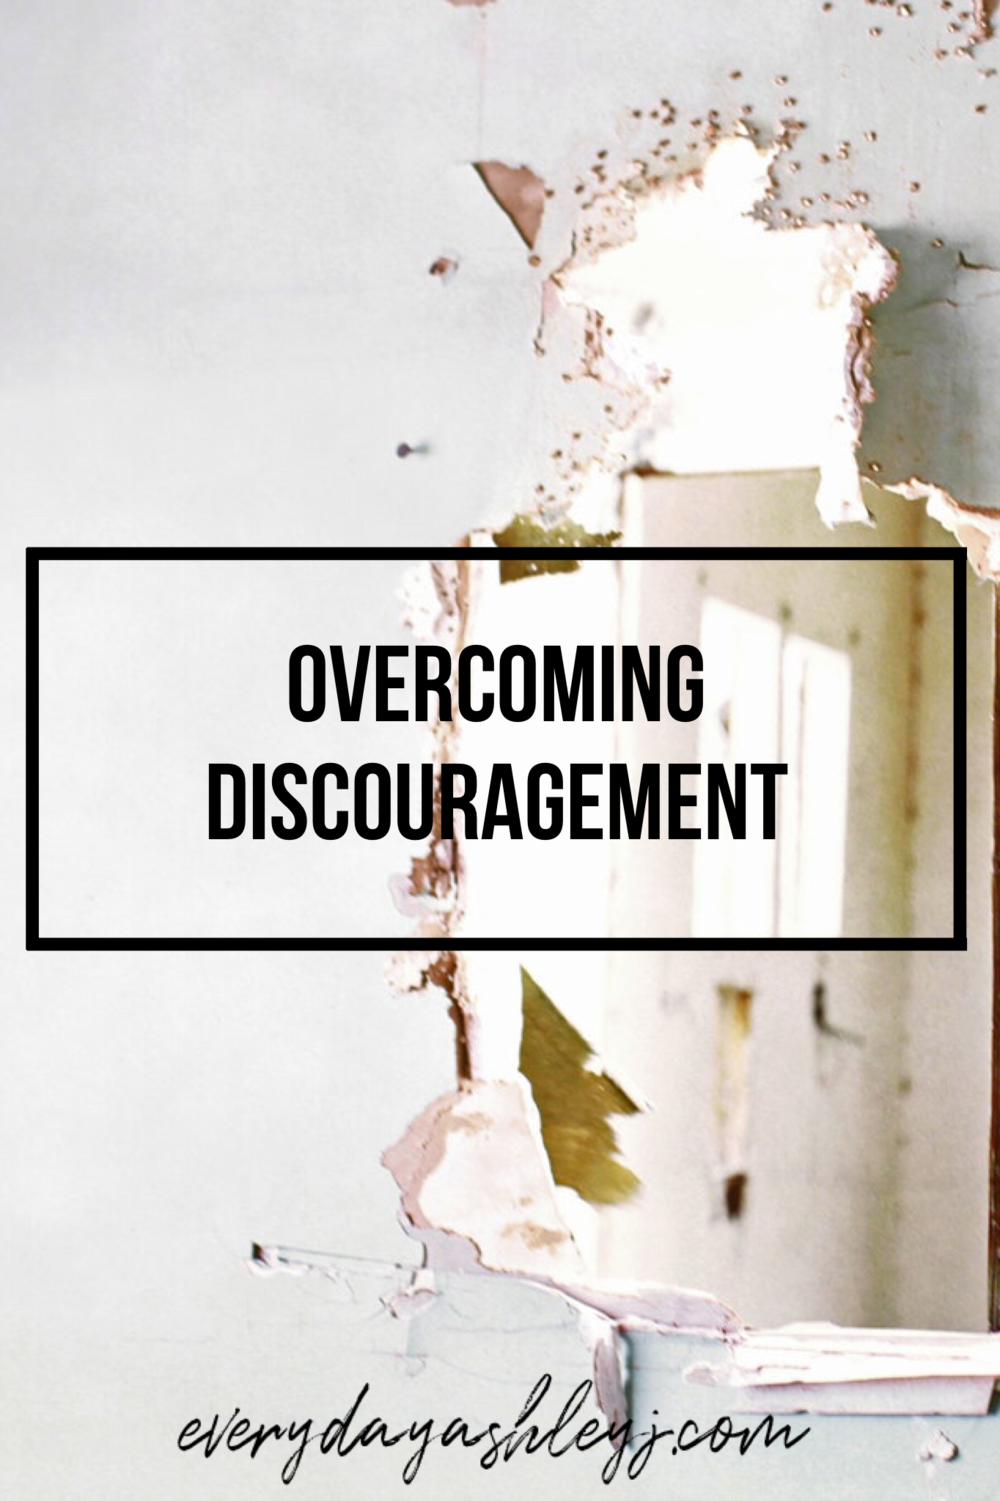 Overcoming_Discouragement_Lifestyle_Blog.PNG